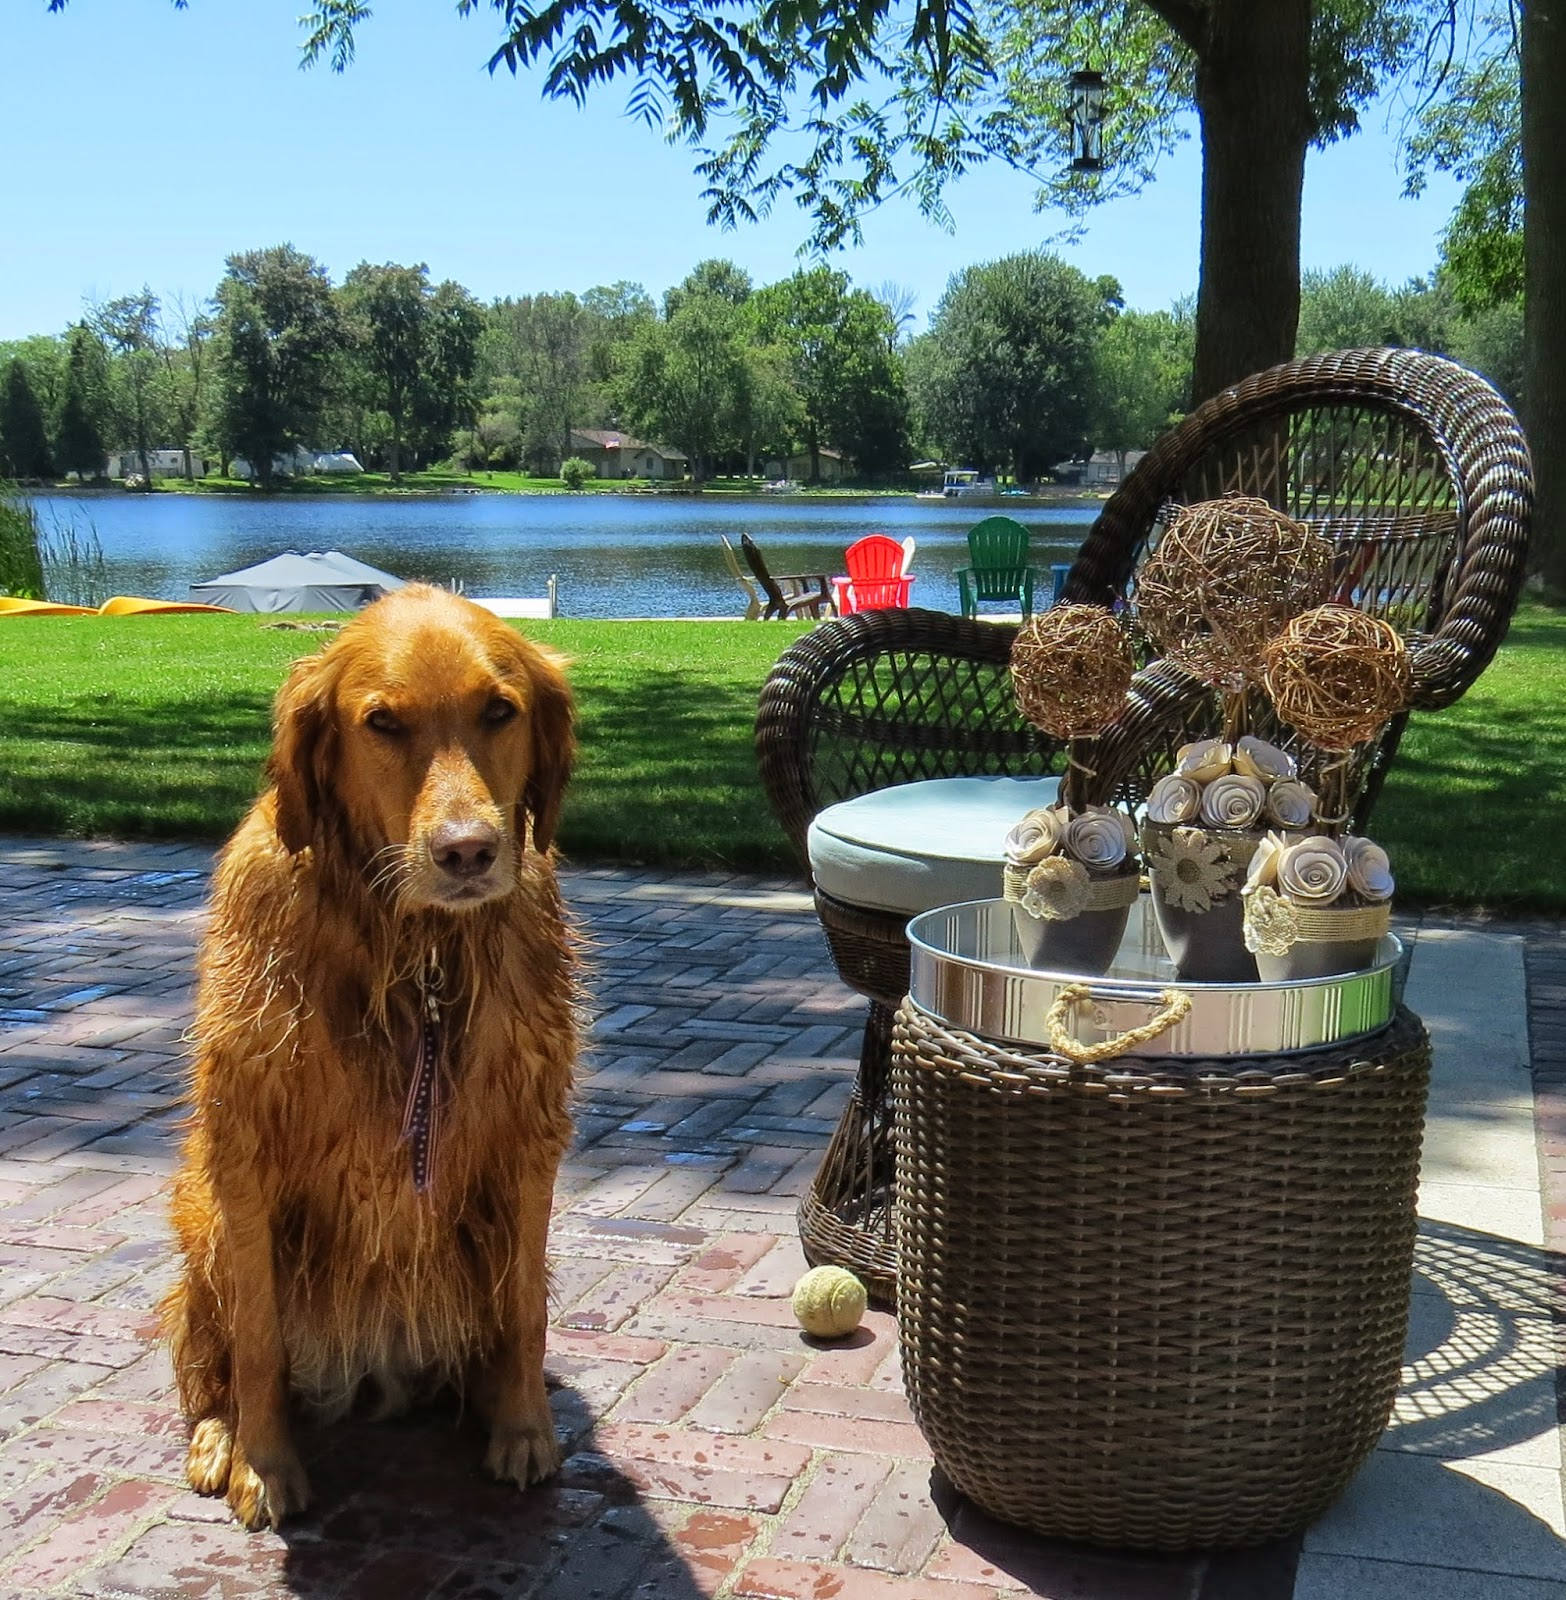 Cricket,, Golden Retreiver, Pier 1 Imports Wicker Swivel Chair. Wicker Planter, Tin serving Tray, Wicker and Tin Serving Tray